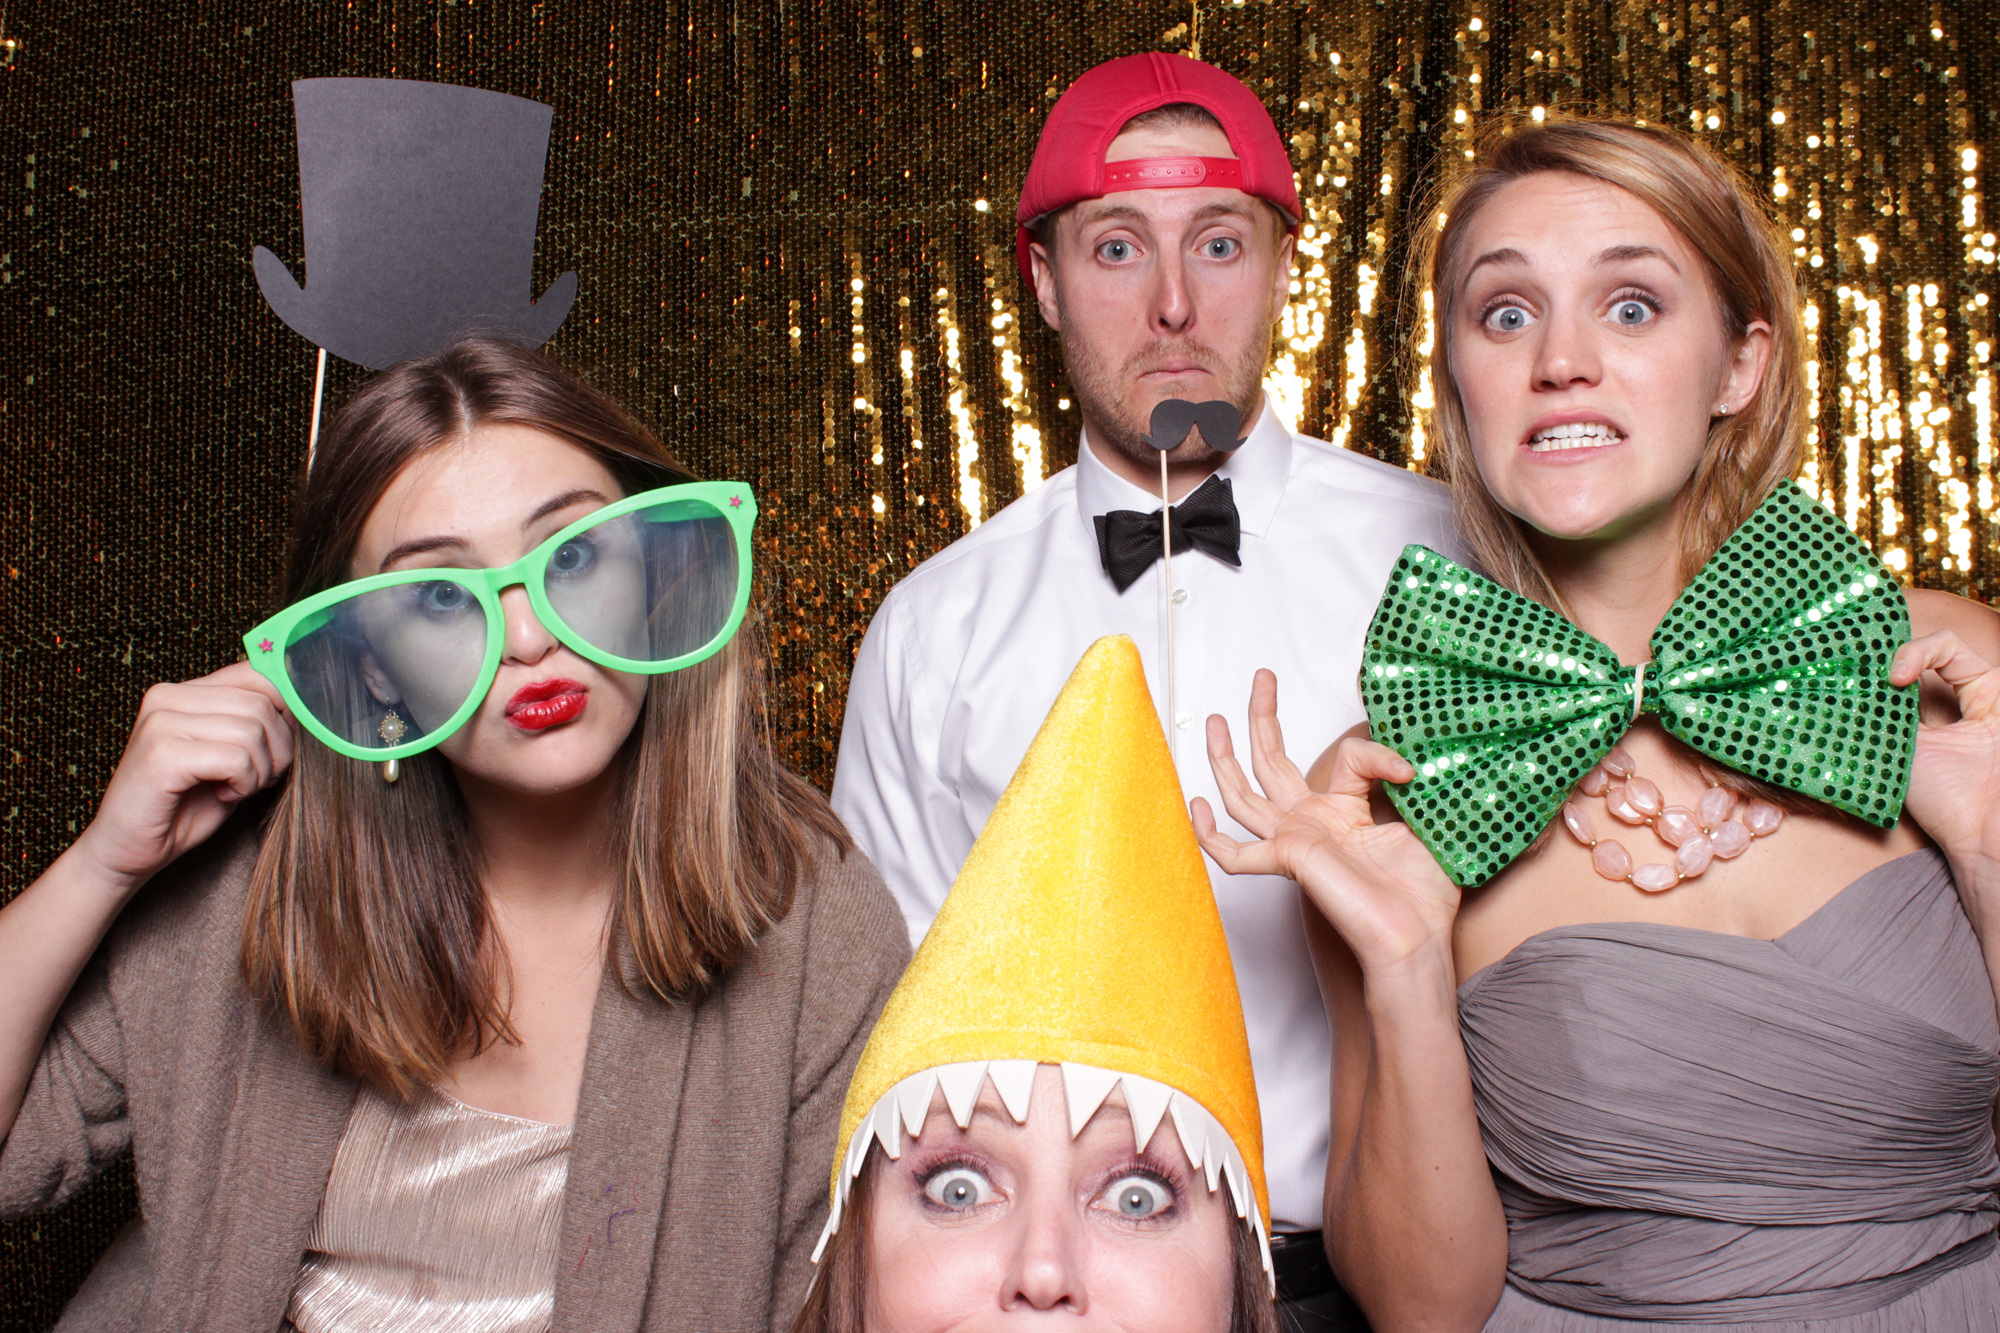 chico-photo-booth-rental-sequins-open-air-6.jpg